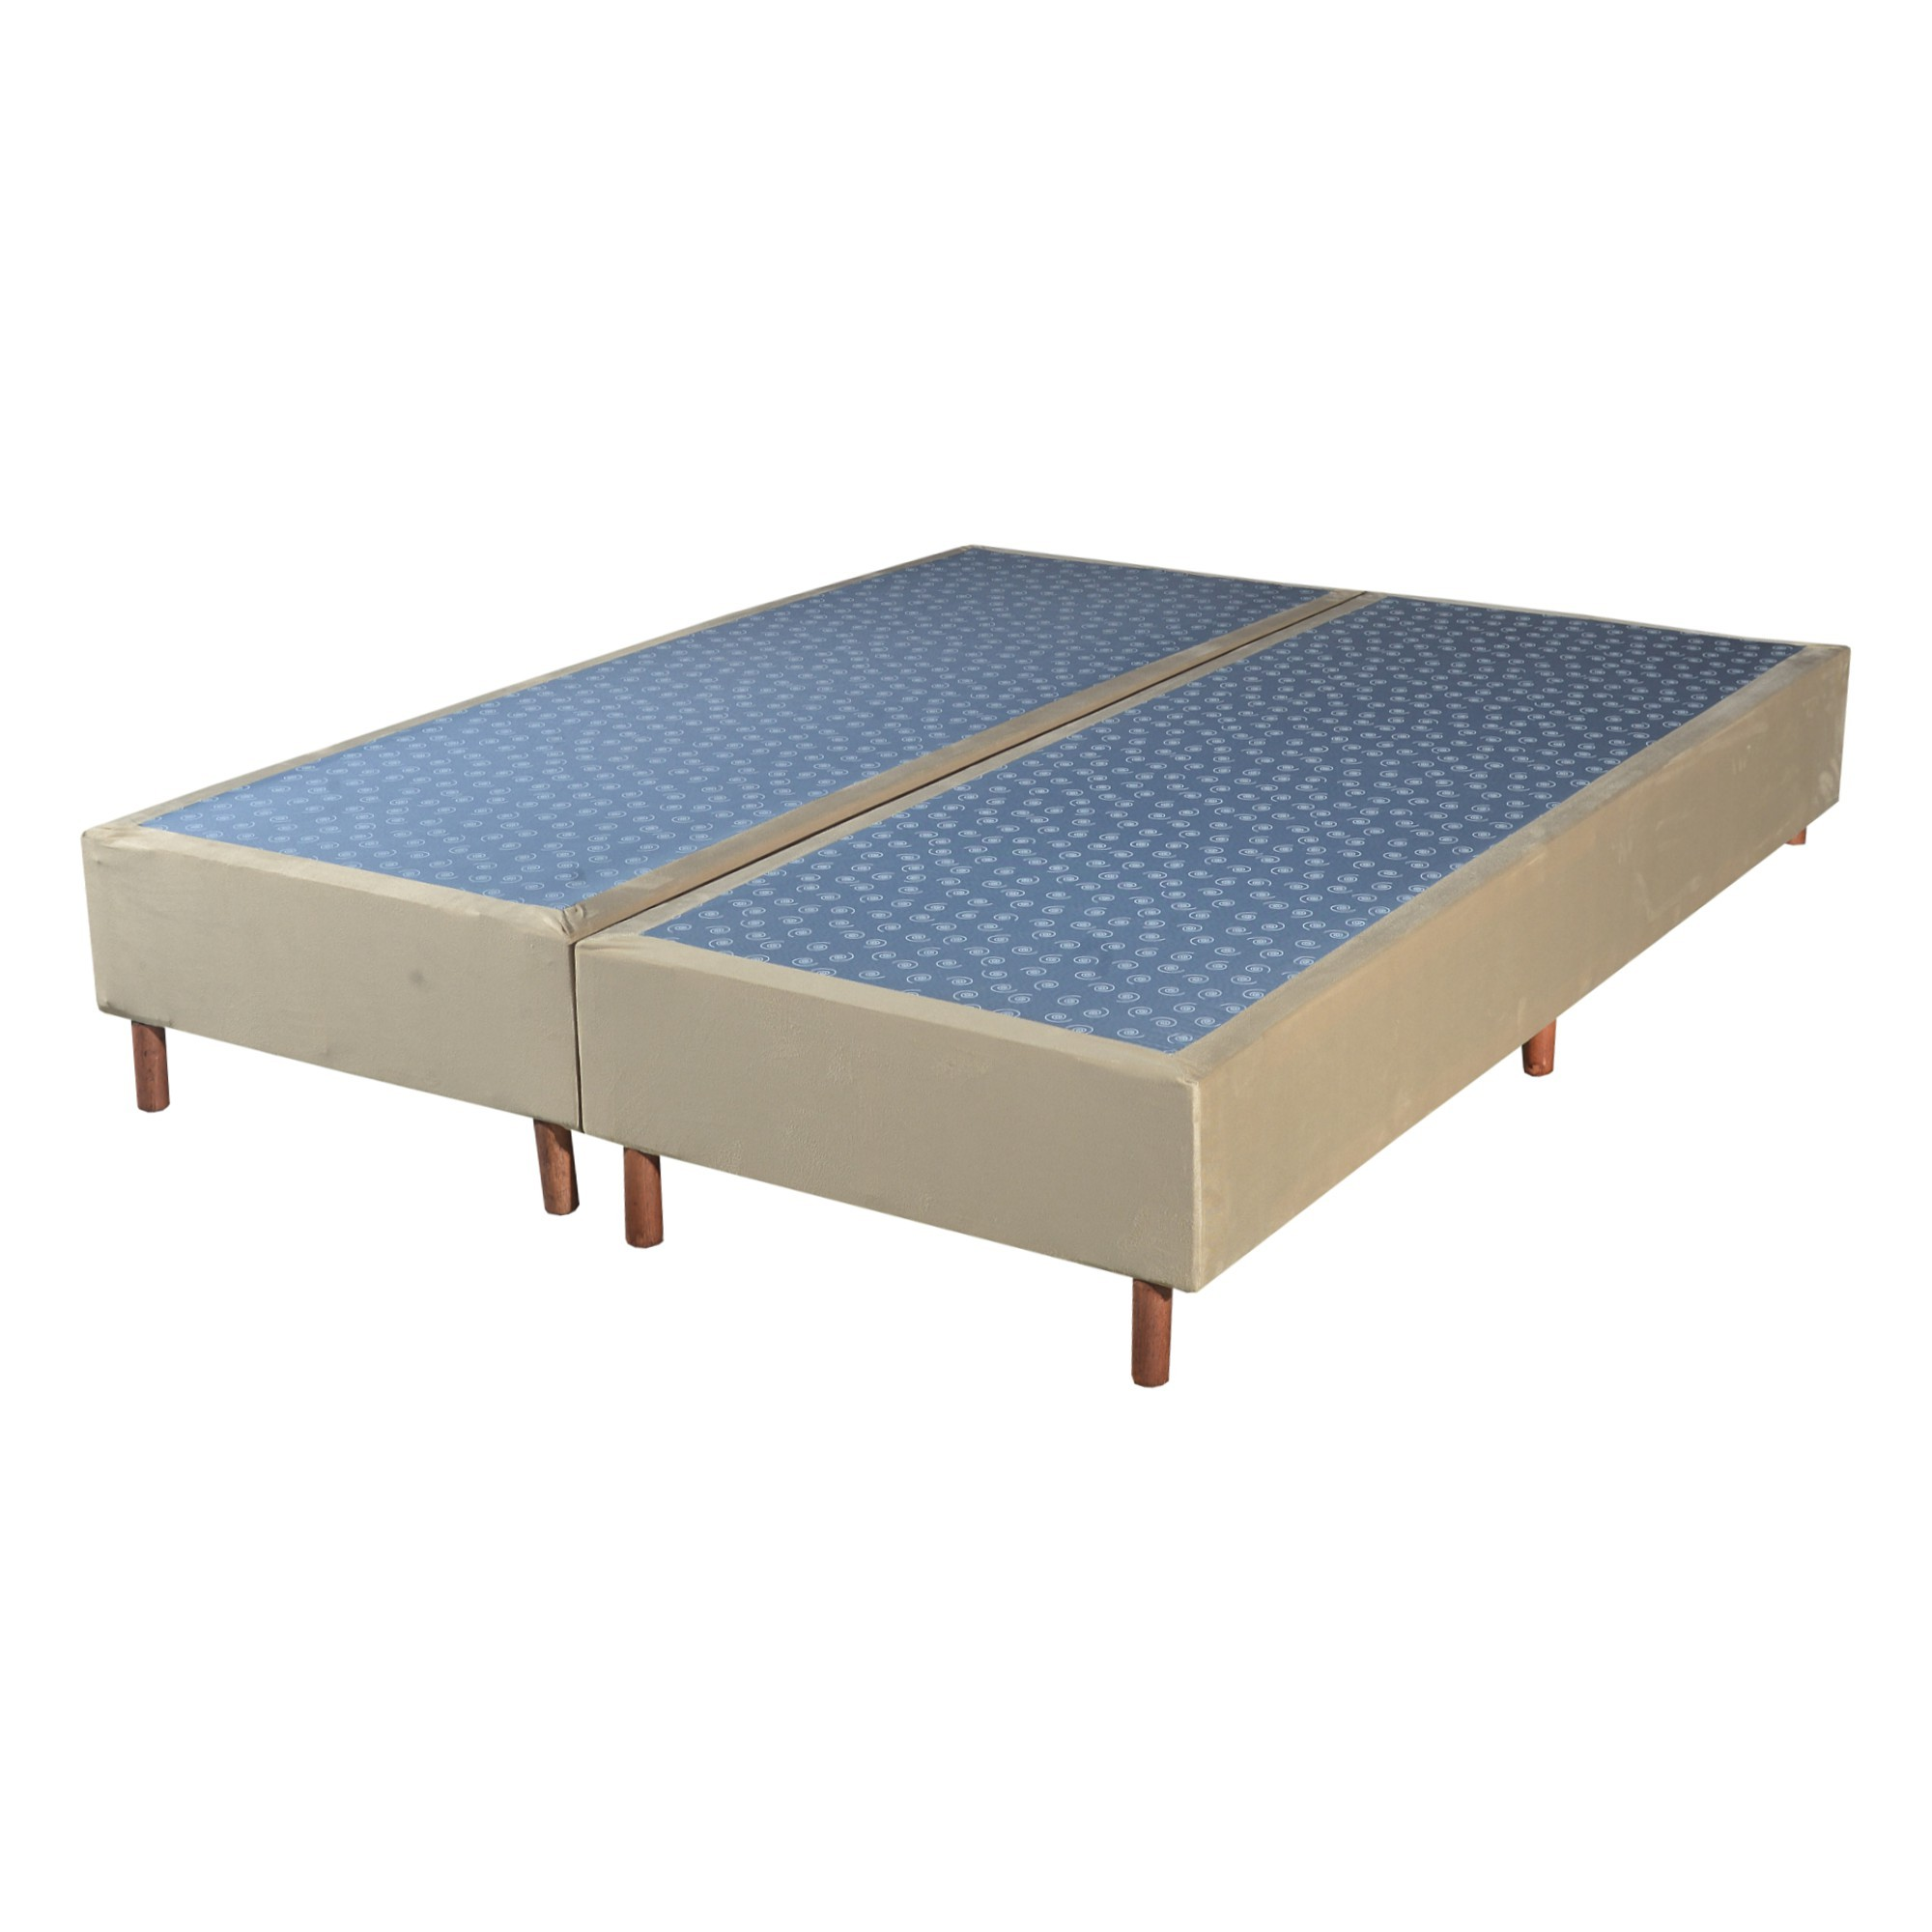 Cama Box Base Queen Veludo Bege 158x198x30